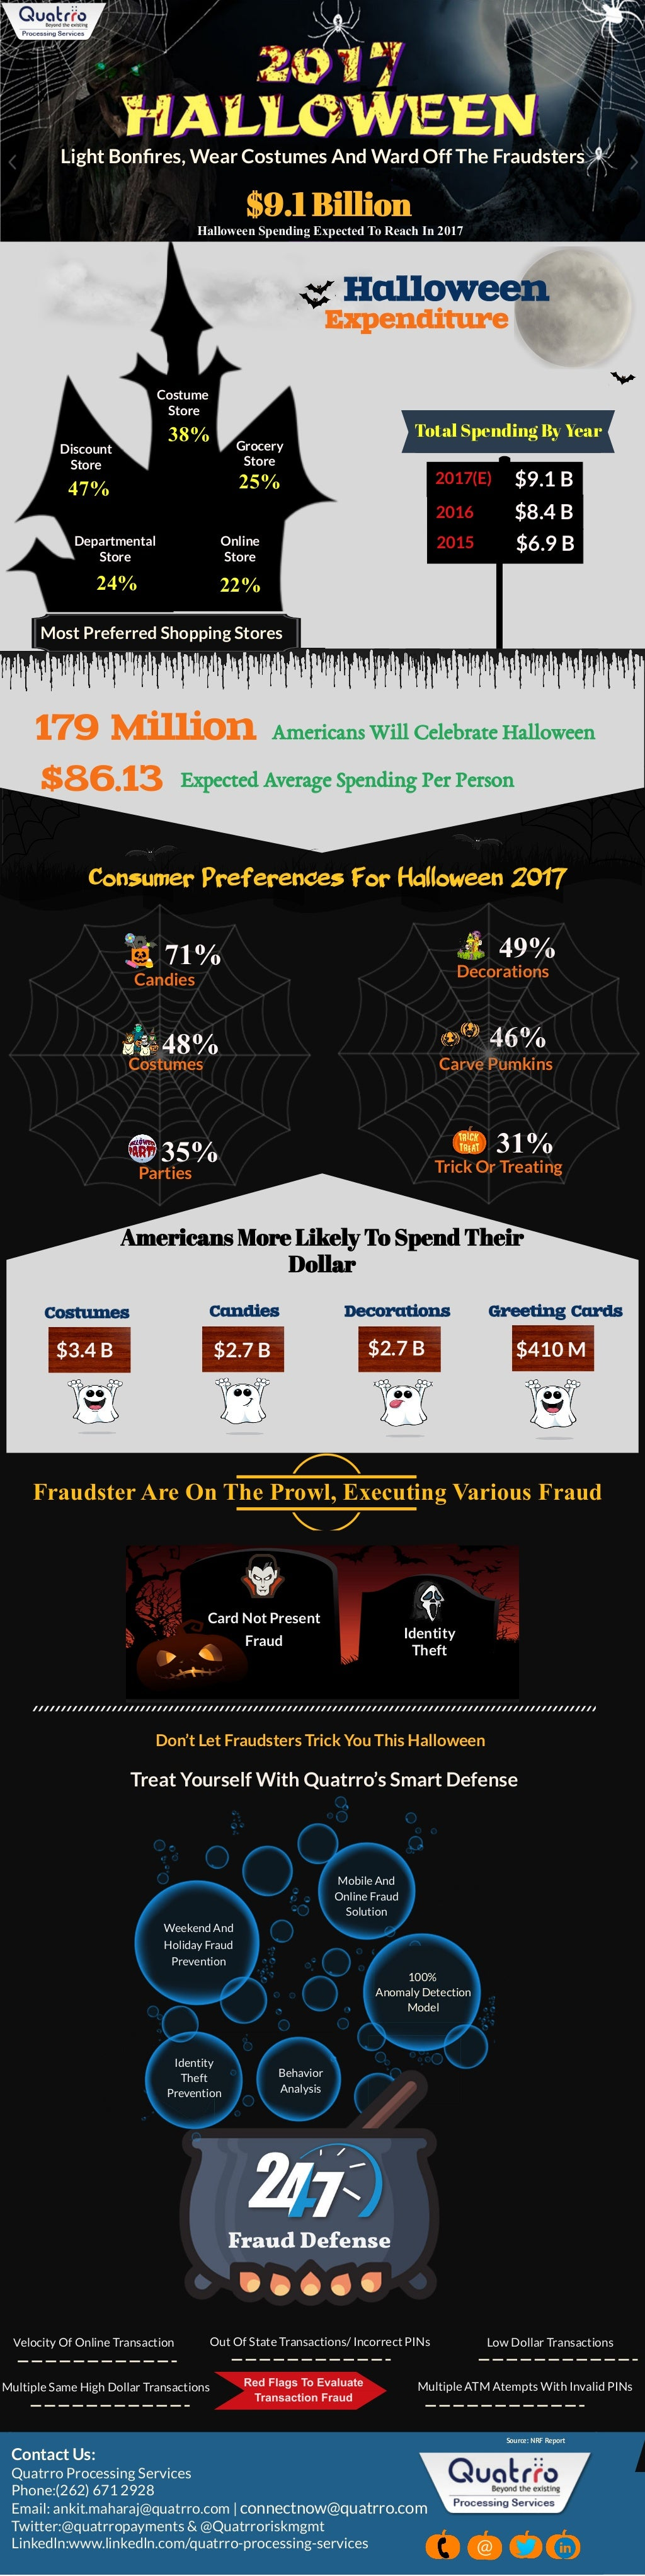 Take Charge Of Minimizing Payment Fraud This Halloween